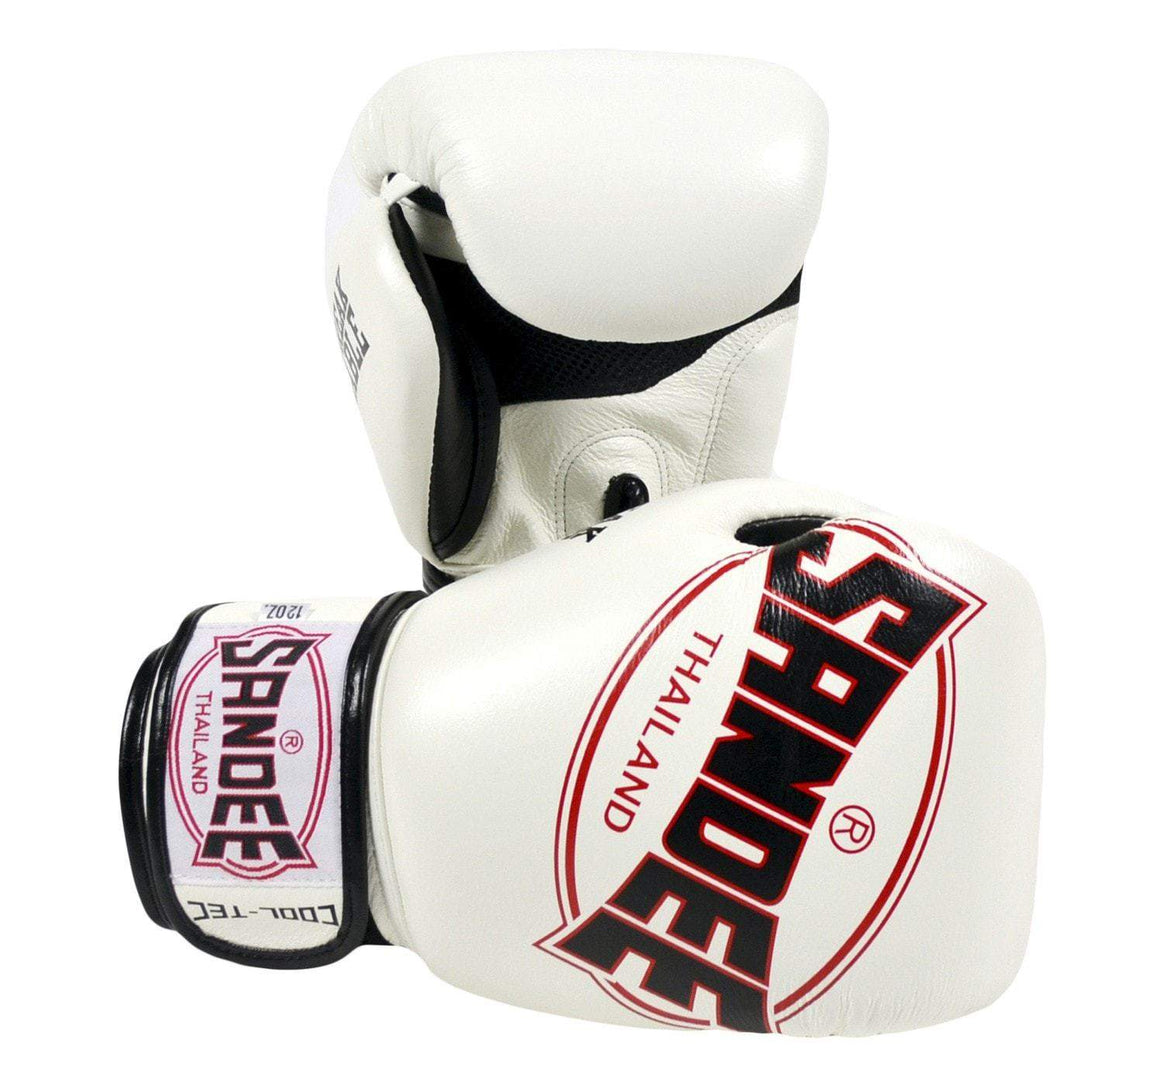 Sandee Junior Cool-Tec Synthetic Leather Boxing Gloves - White/Black